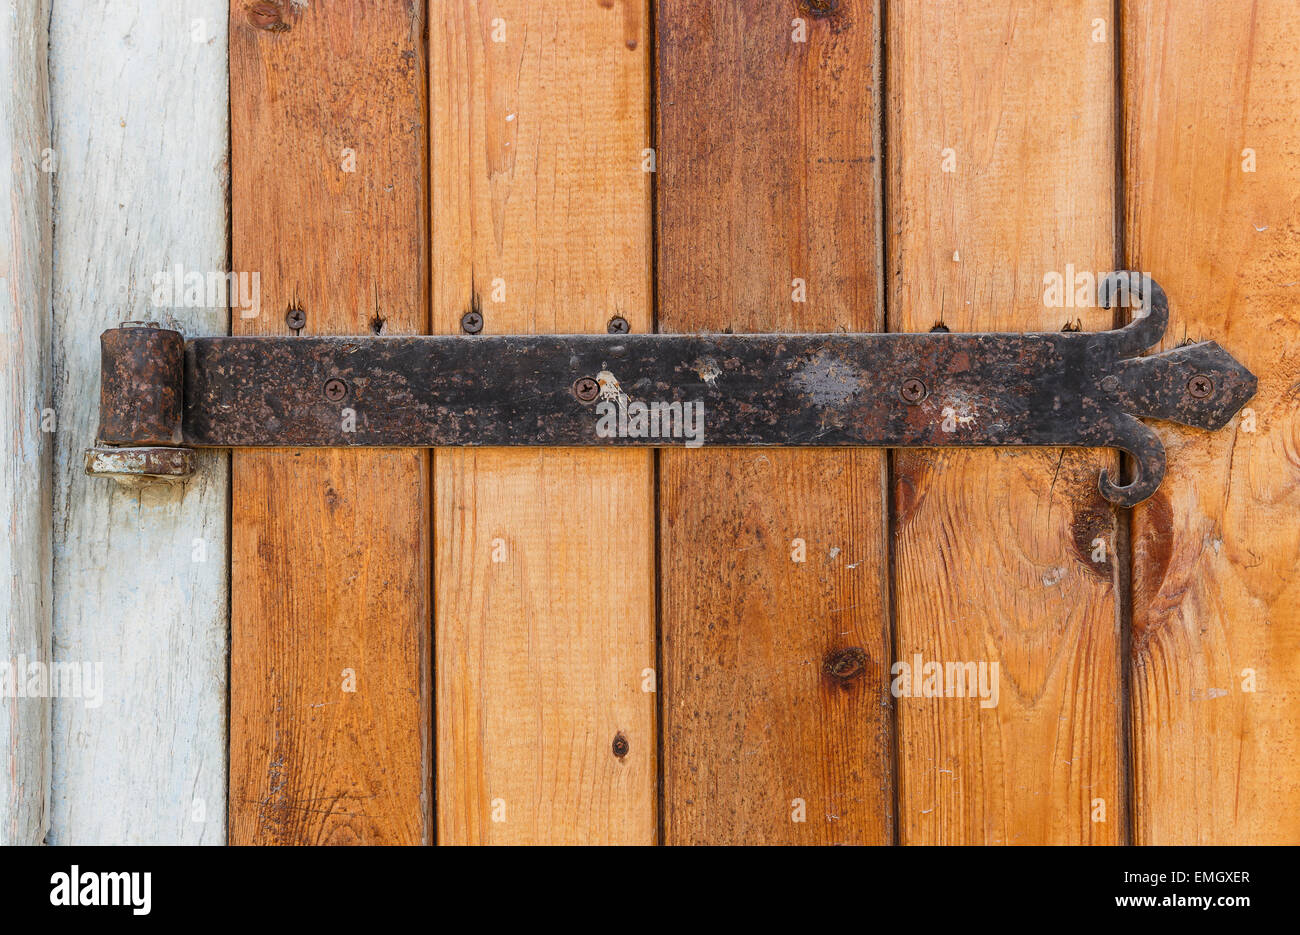 Old Wooden Door With An Old Cast Iron Door Hinges Stock